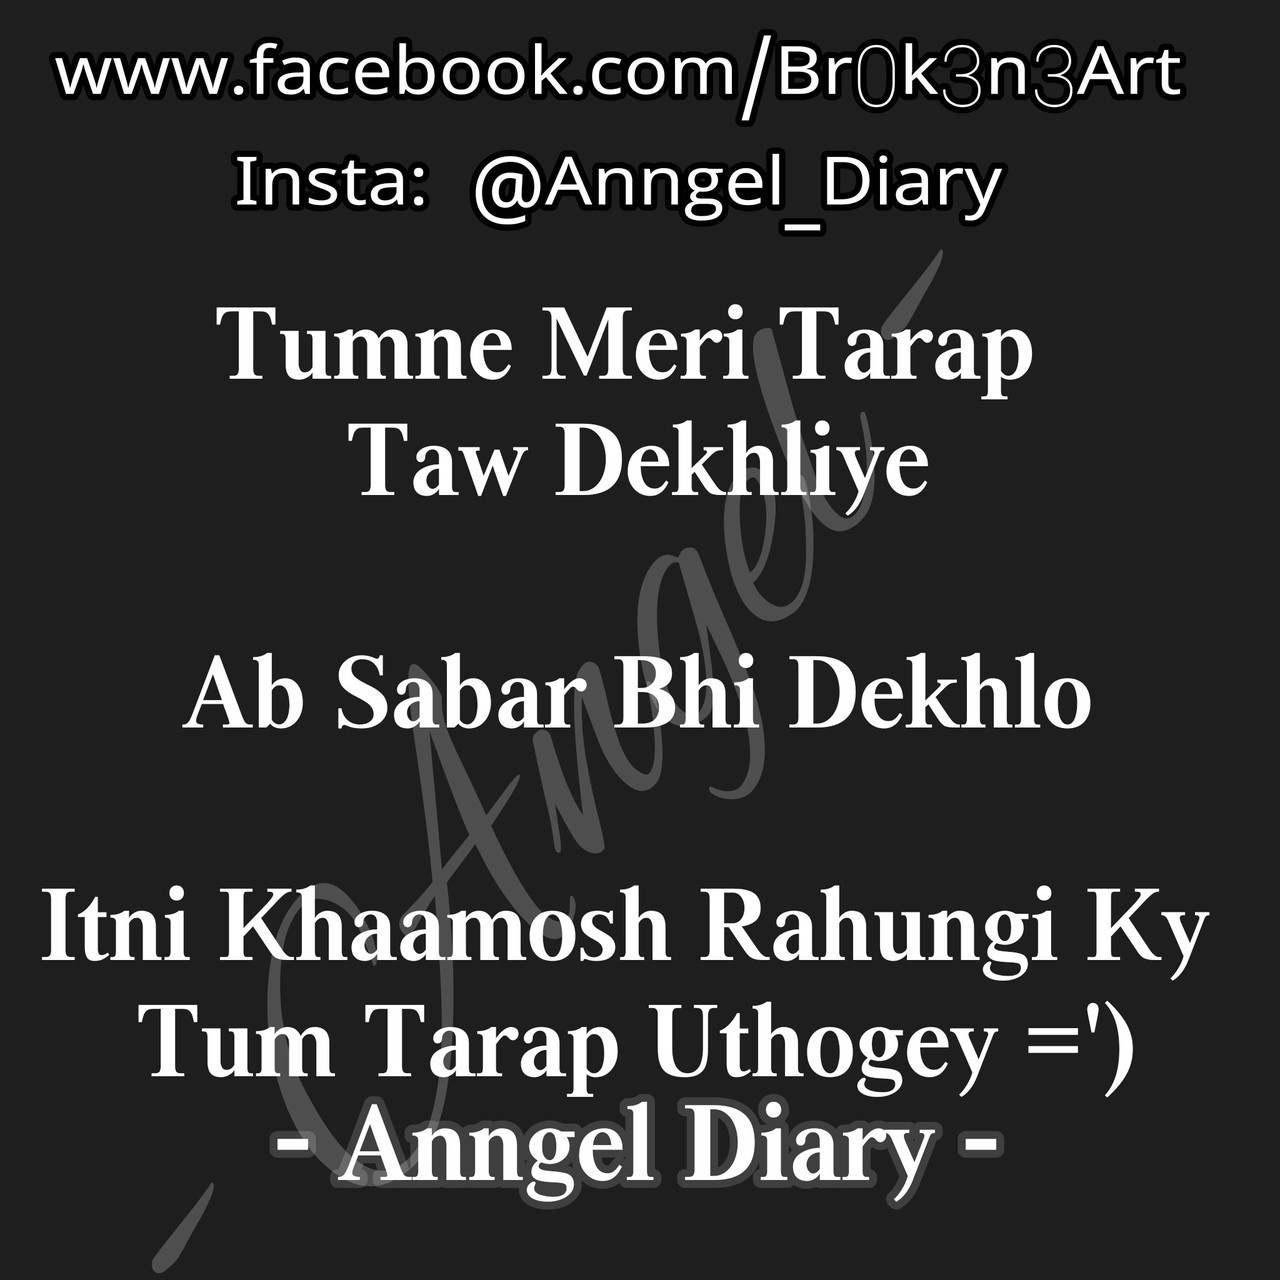 121 images about matlabi duniya on We Heart It | See more